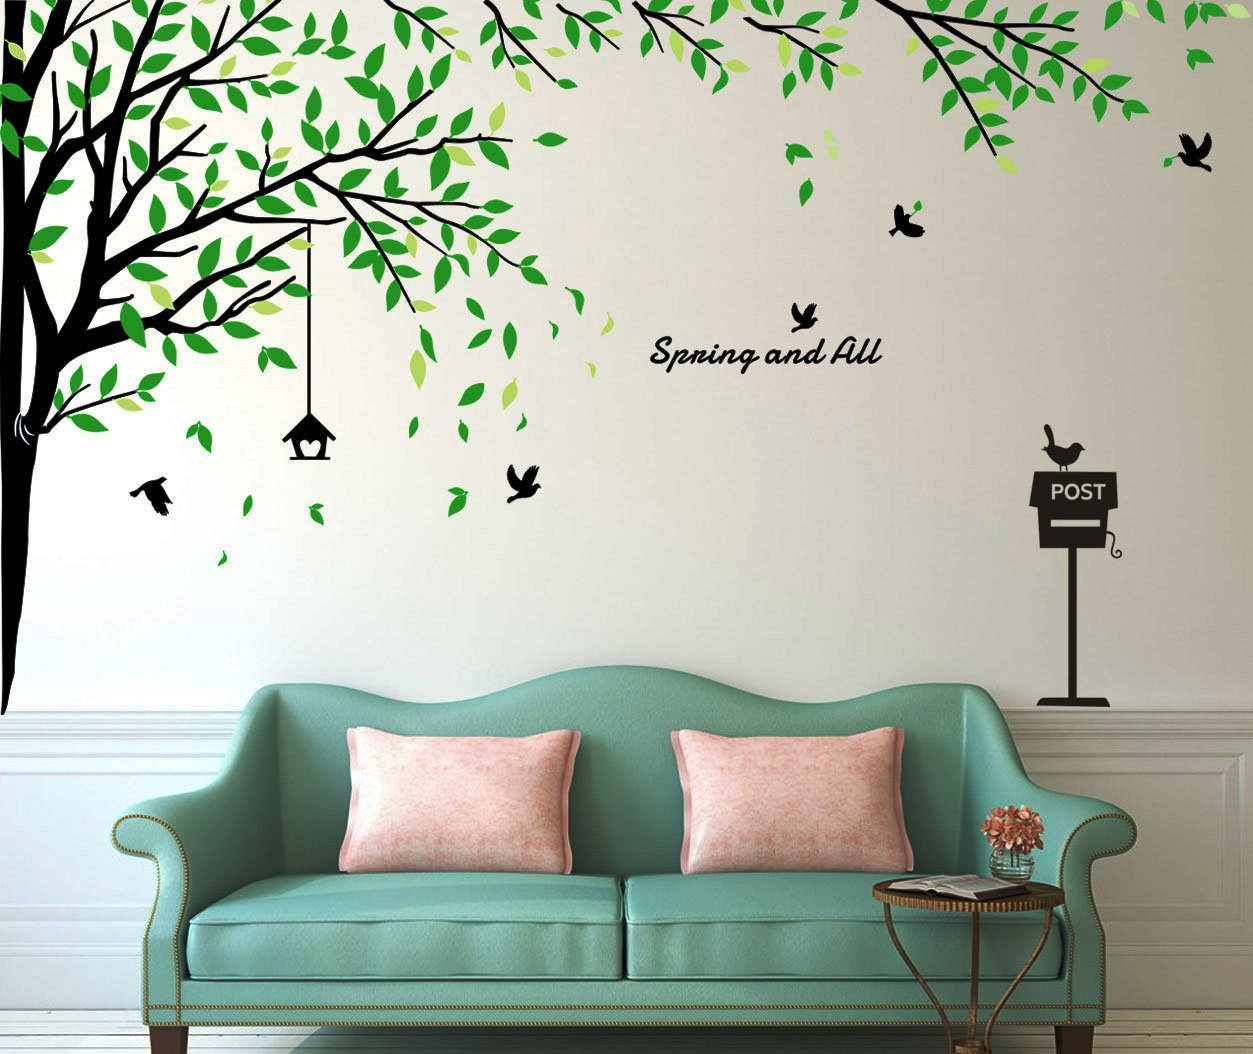 Fymural Large Brids Tree Wall Stickers Art Mural Wallpaper for Livingroom Kid Baby Nursery Background Vinyl Removable DIY Decals 116.9x70.9,Black+Green